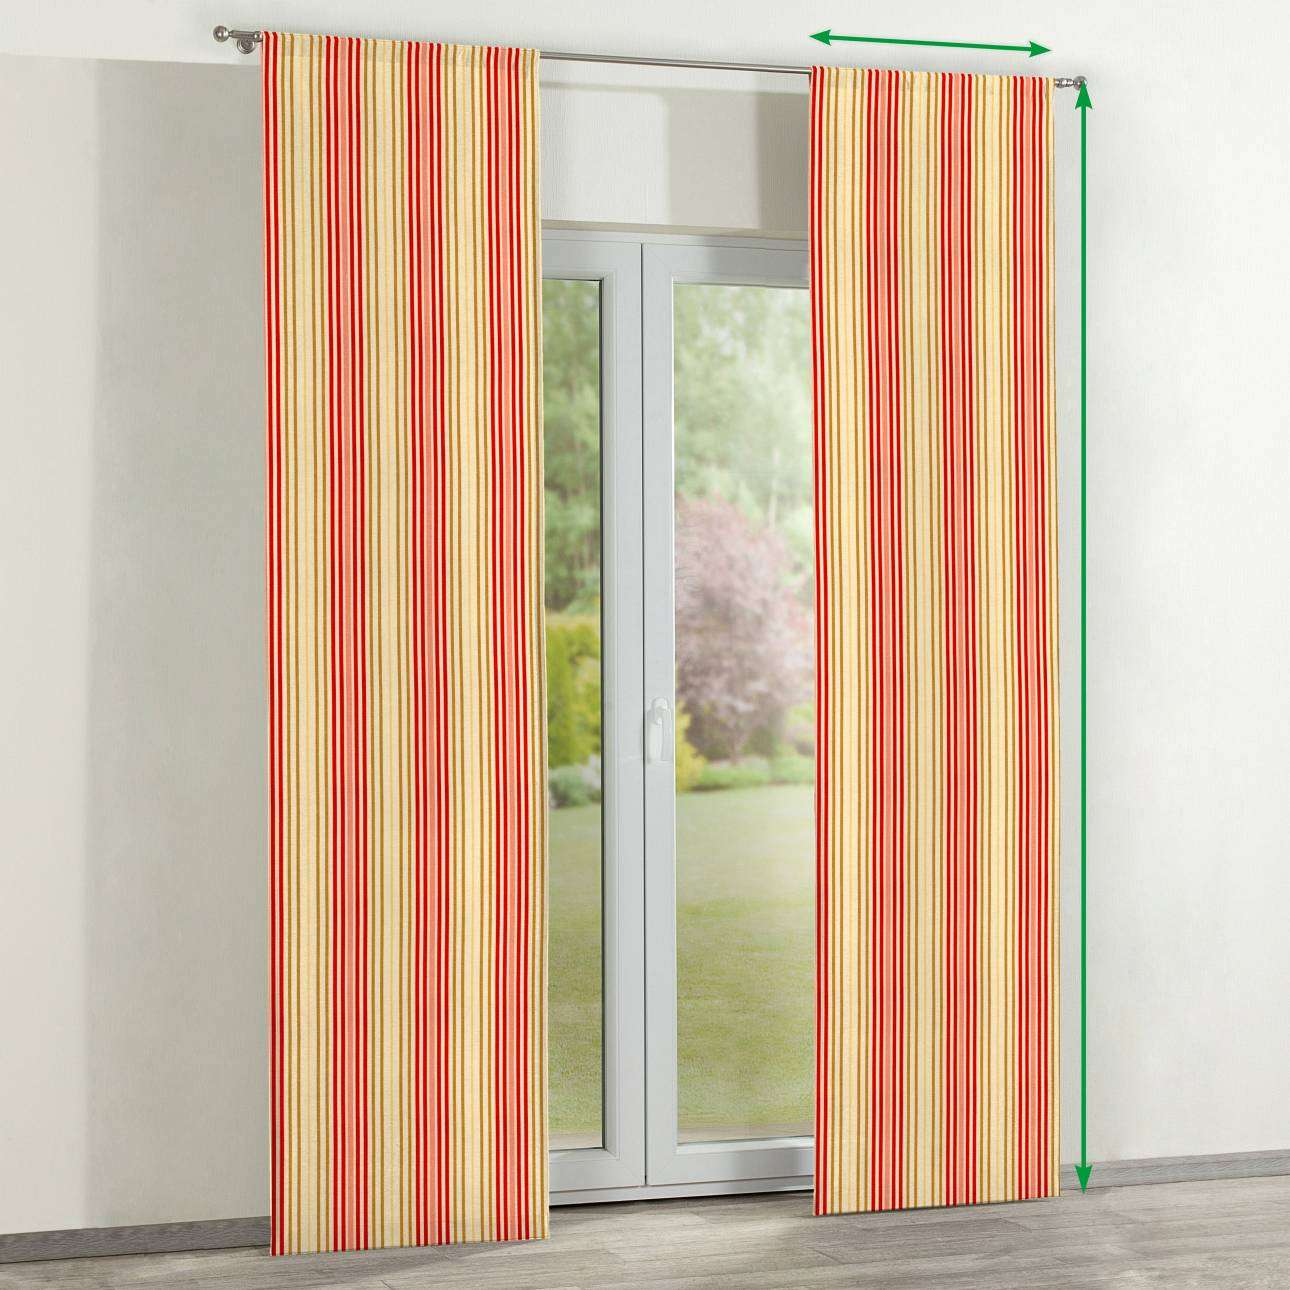 Slot panel curtains – Set of 2 in collection Londres, fabric: 122-05